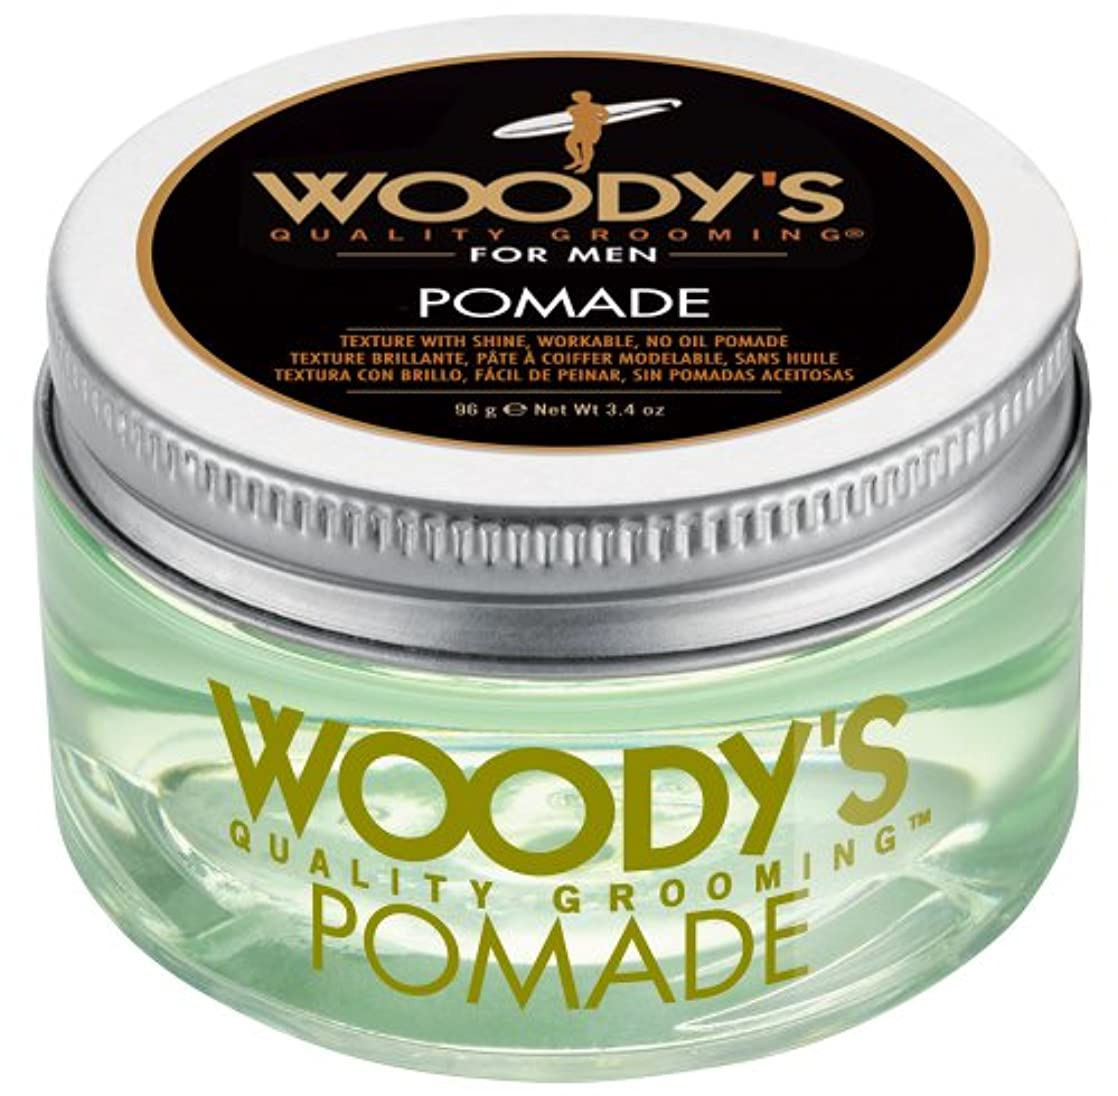 リビングルーム演じる貝殻Woody's Pomade for Men, Pomade, 3.4 Ounce